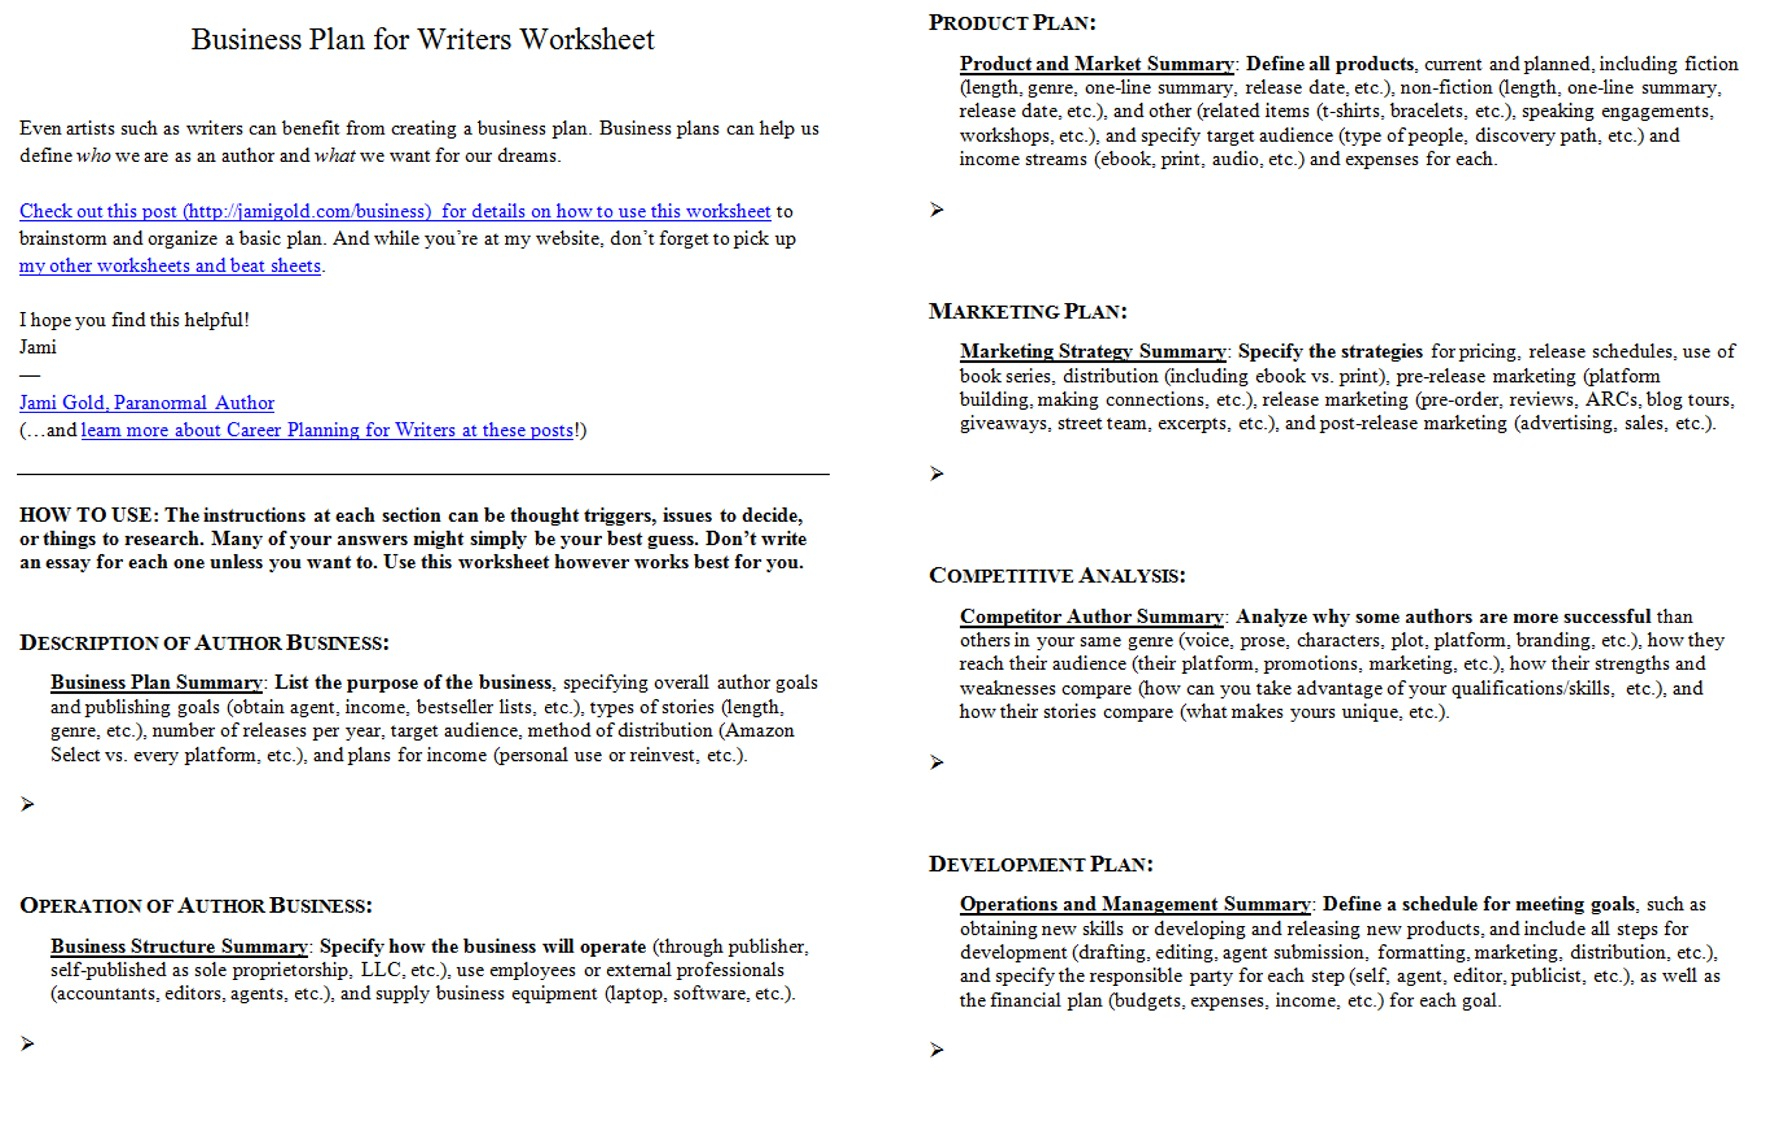 example of short story analysis revenge theme poster the other  worksheets for writers jami gold paranormal author screen shot of both pages of the business plan 11 example